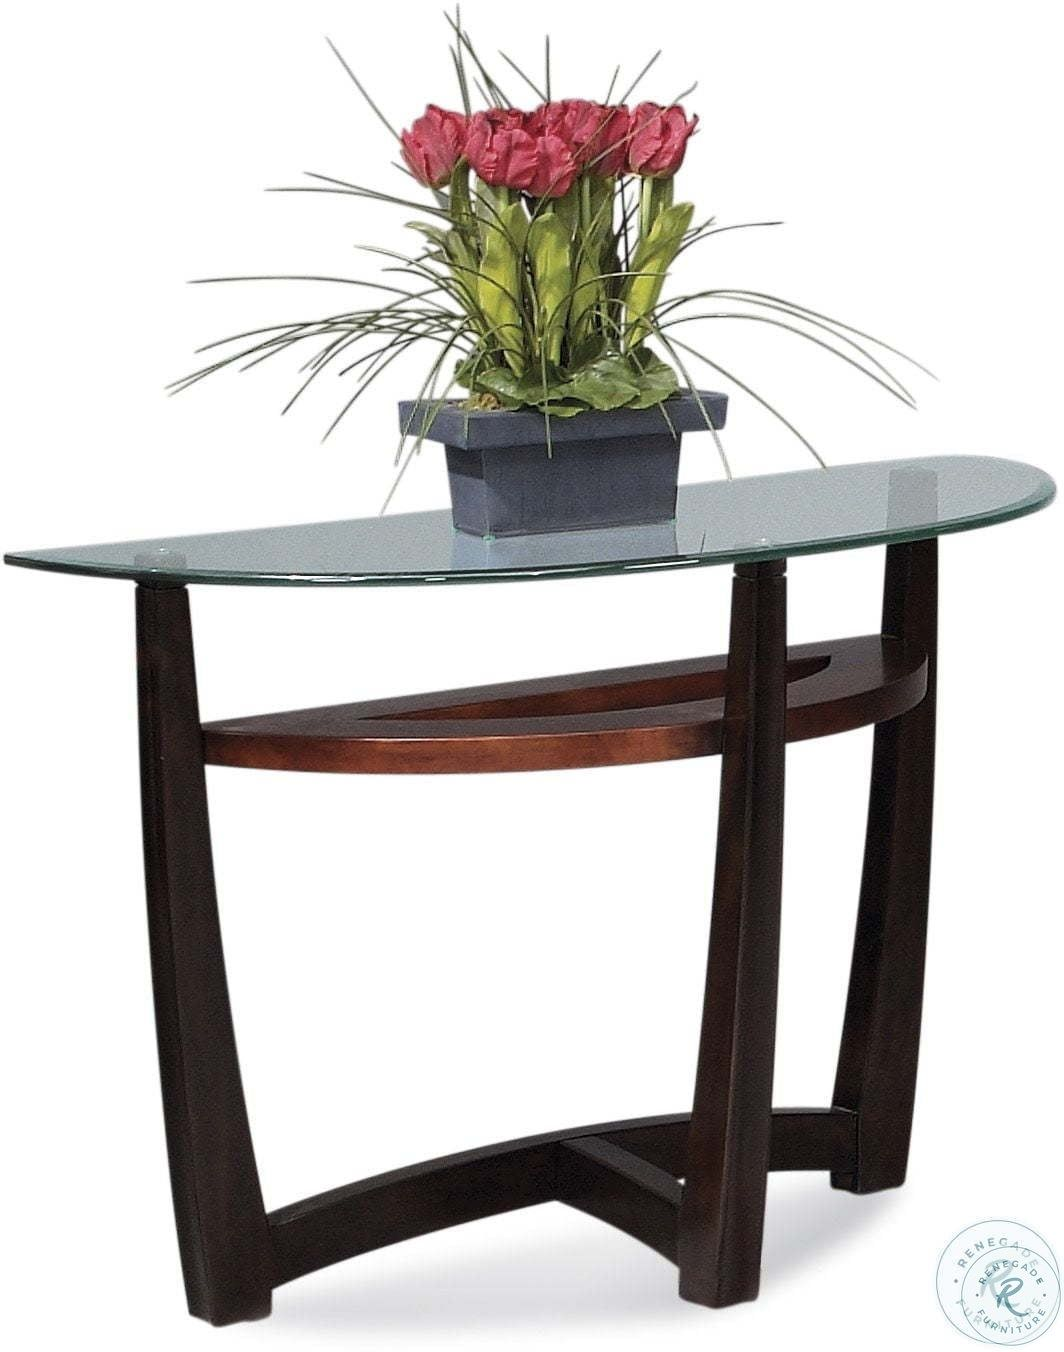 Metro Copper And Espresso Round Occasional Table Set In 2021 Console Table Bassett Mirror Modern Console Tables [ 1352 x 1064 Pixel ]